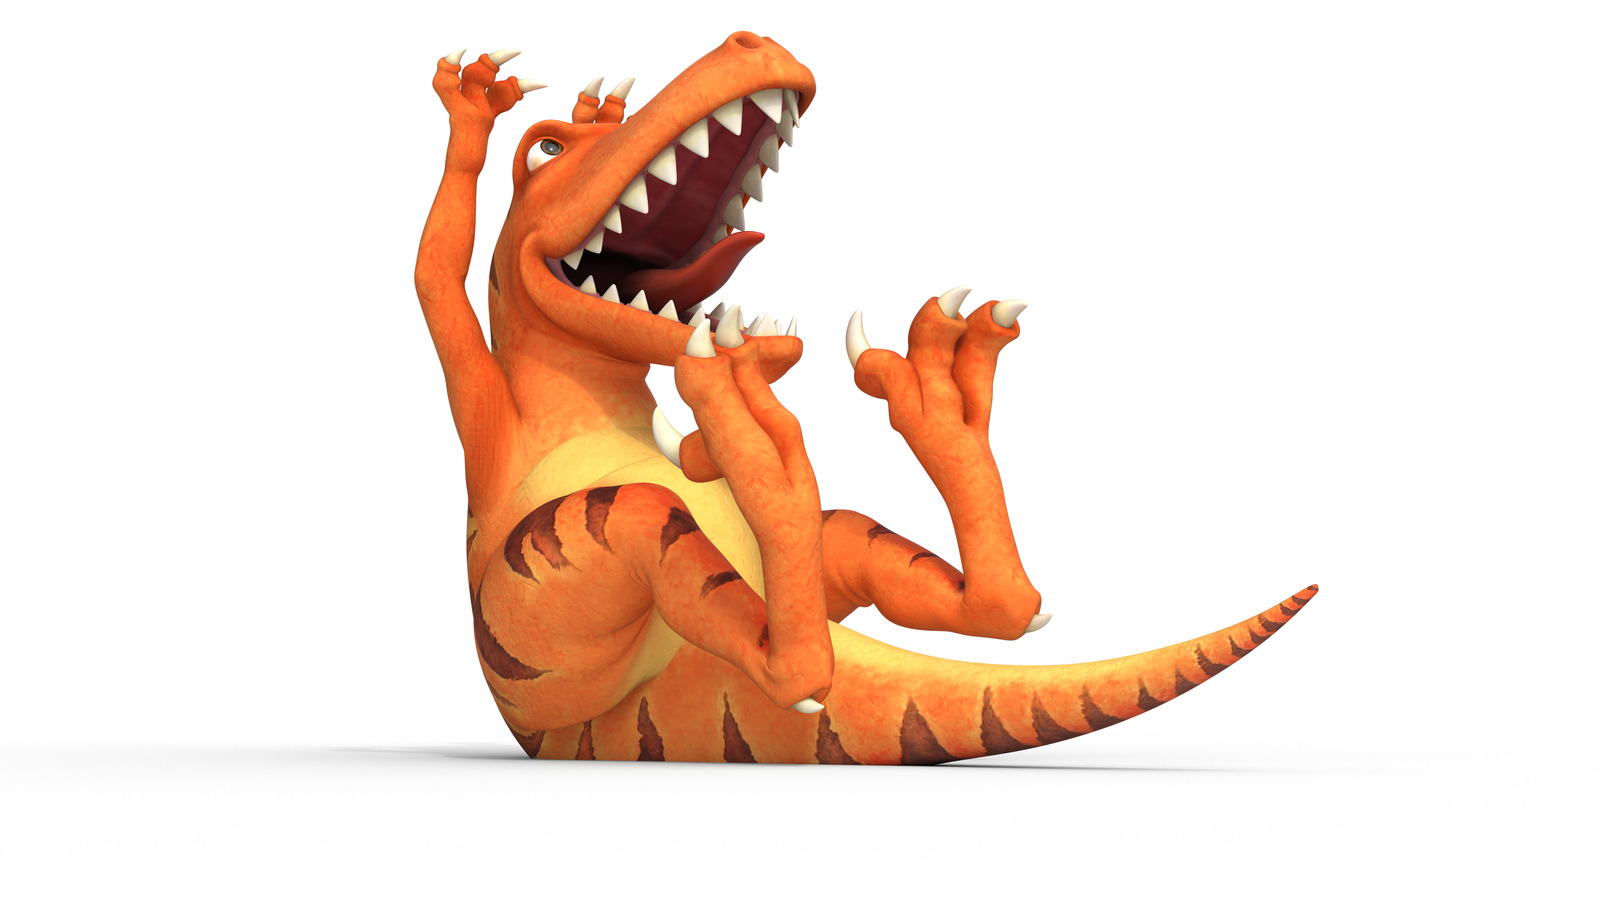 Render of BOO dinosaur